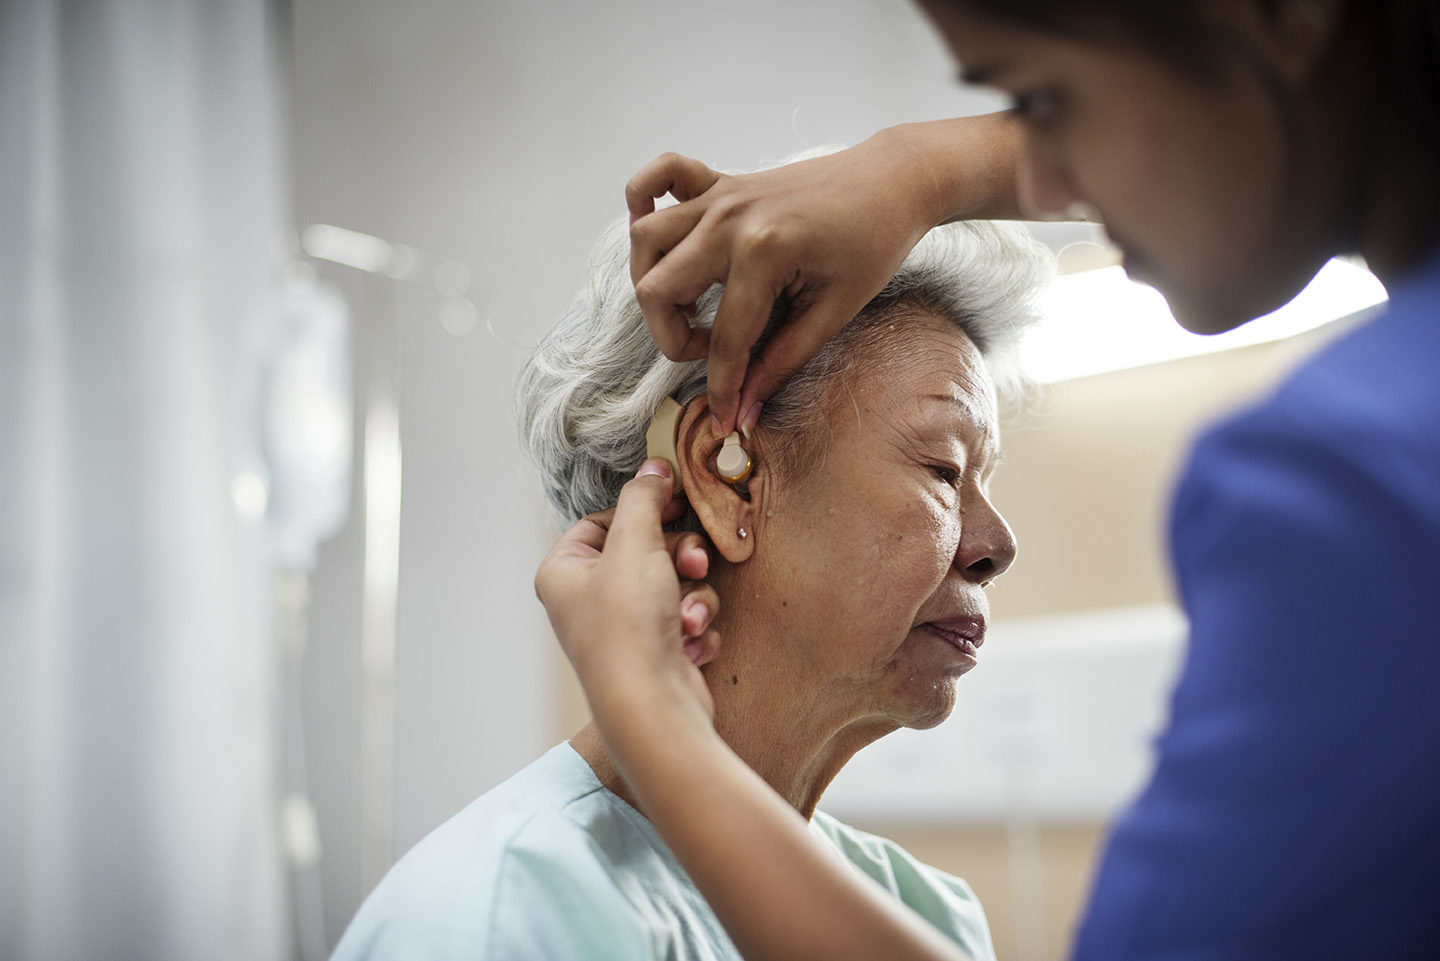 An older woman is fitted with a hearing aid.